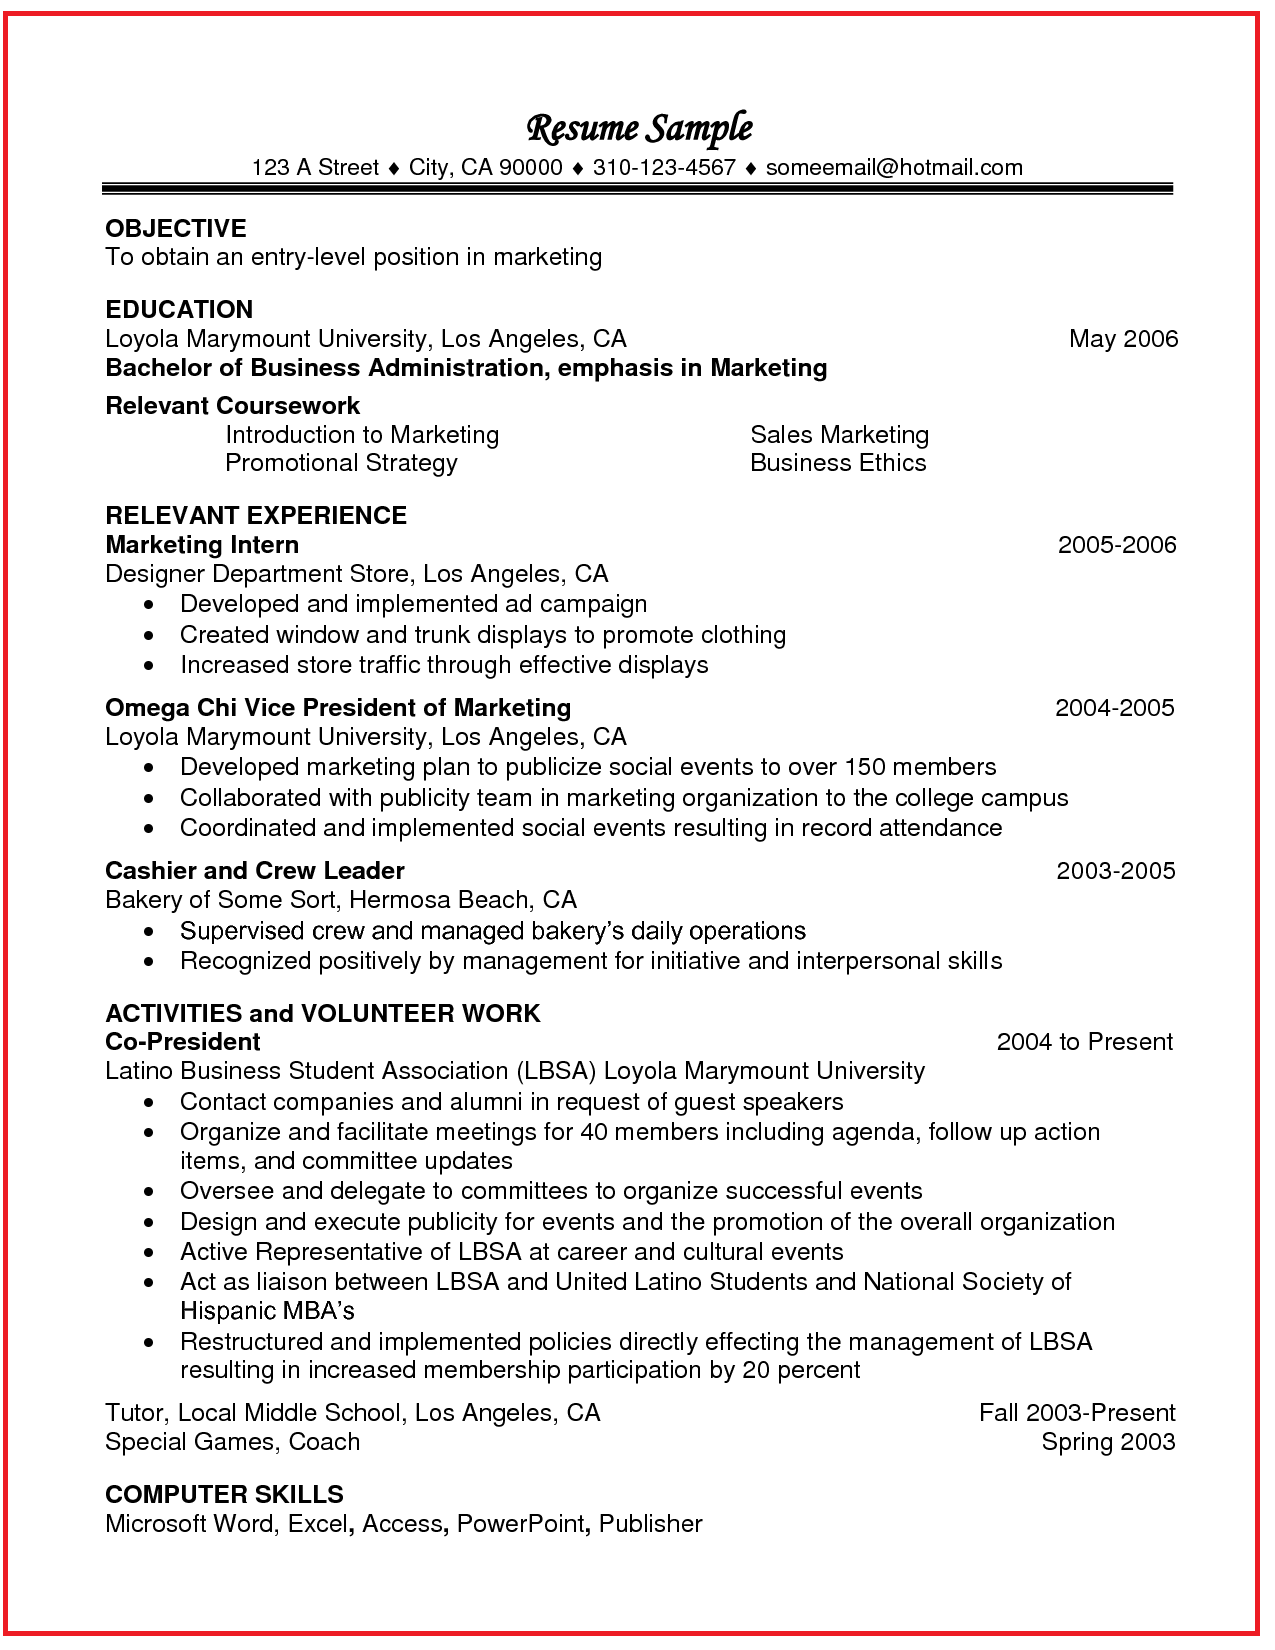 Additional coursework on resume you put